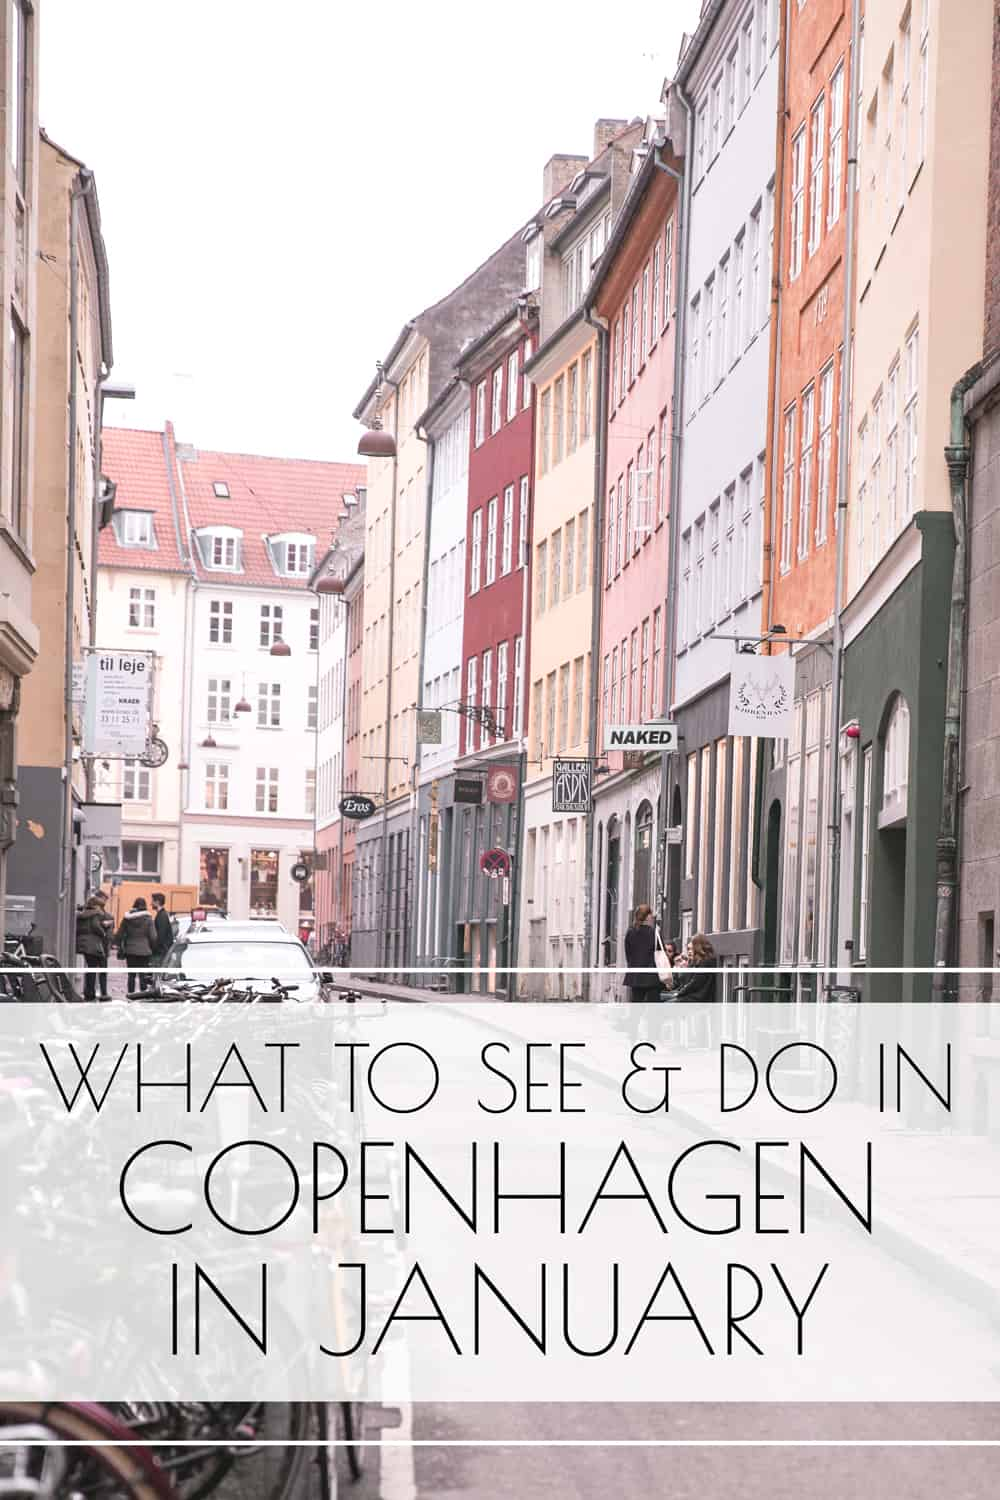 What to see and do in Copenhagen in January! Read for what to pack, what the weather was like, and activities like the Round Tower and Nyhavn!